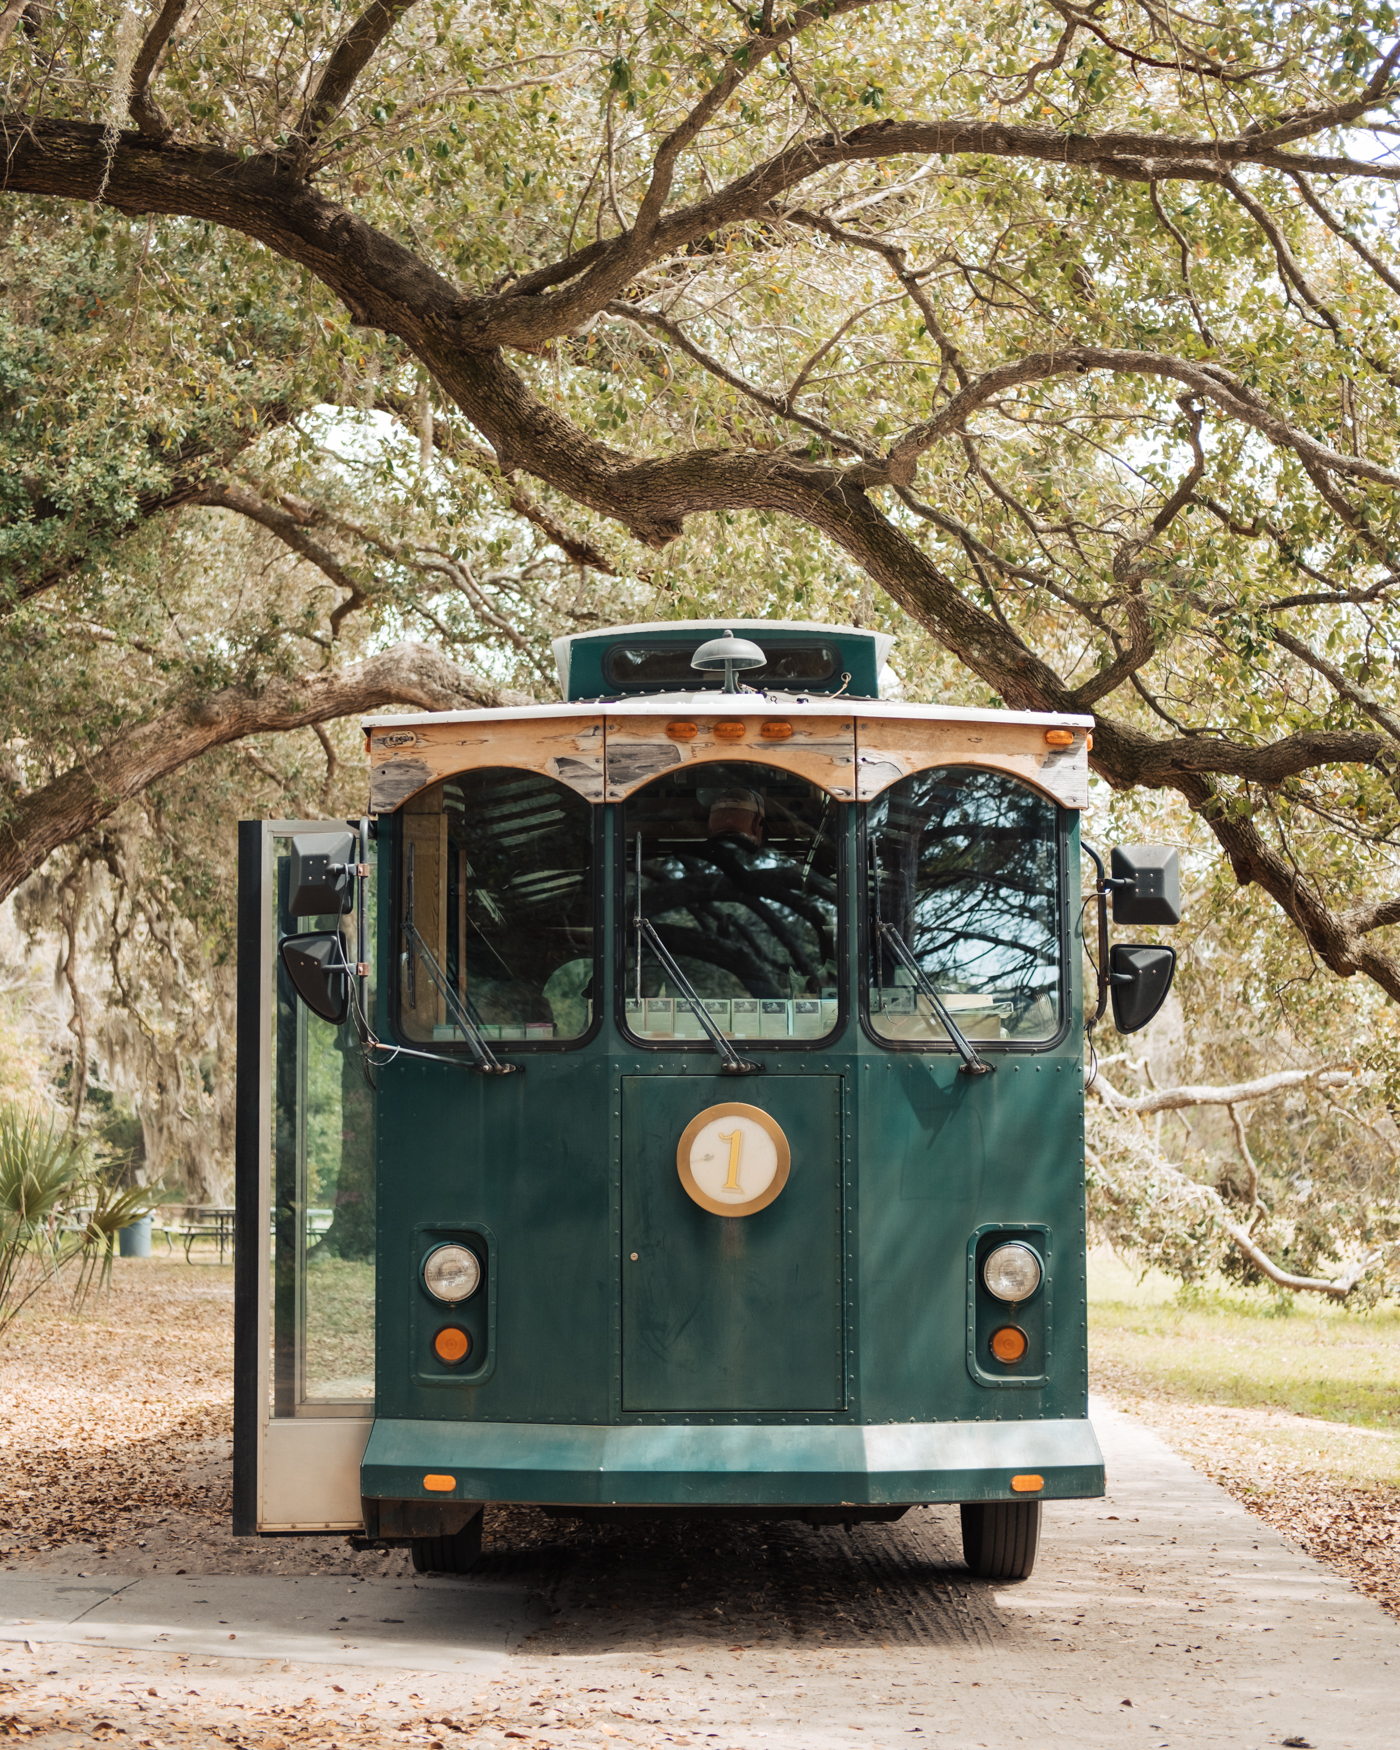 charleston-tea-plantation-trolley.jpg